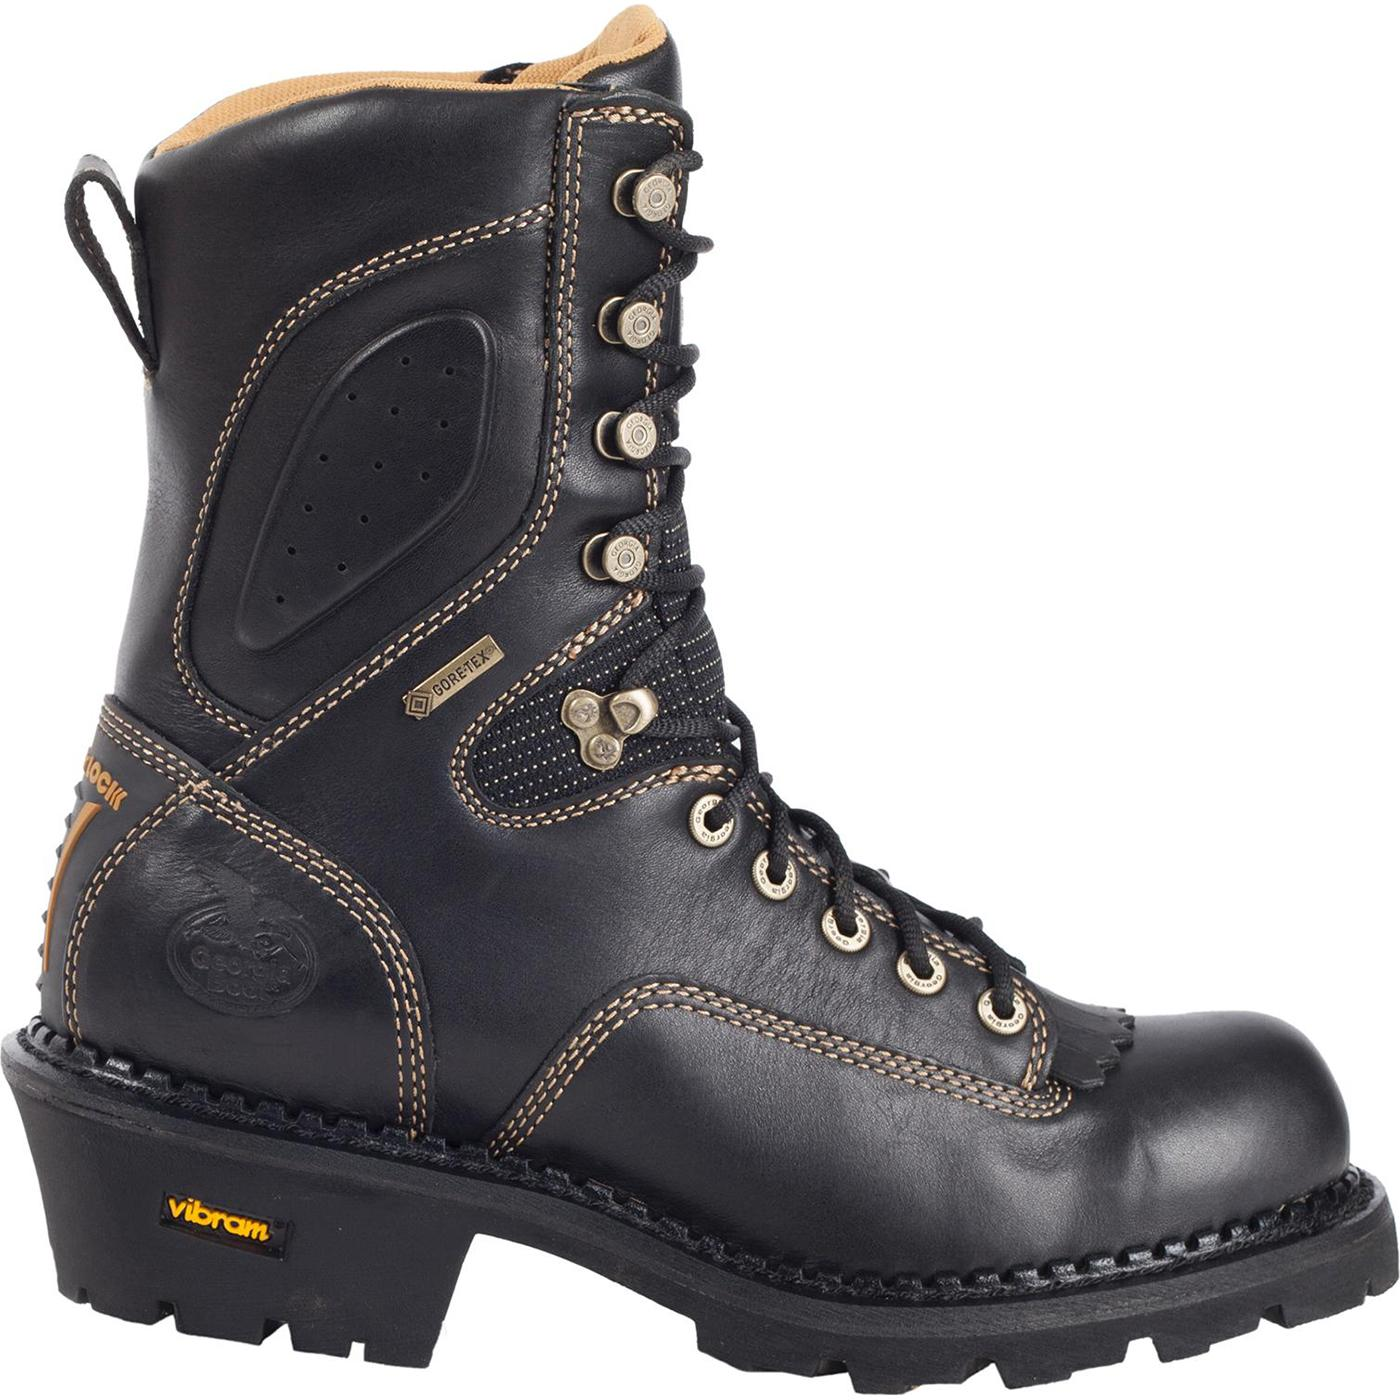 Logger Work Boots Dry5CyCy